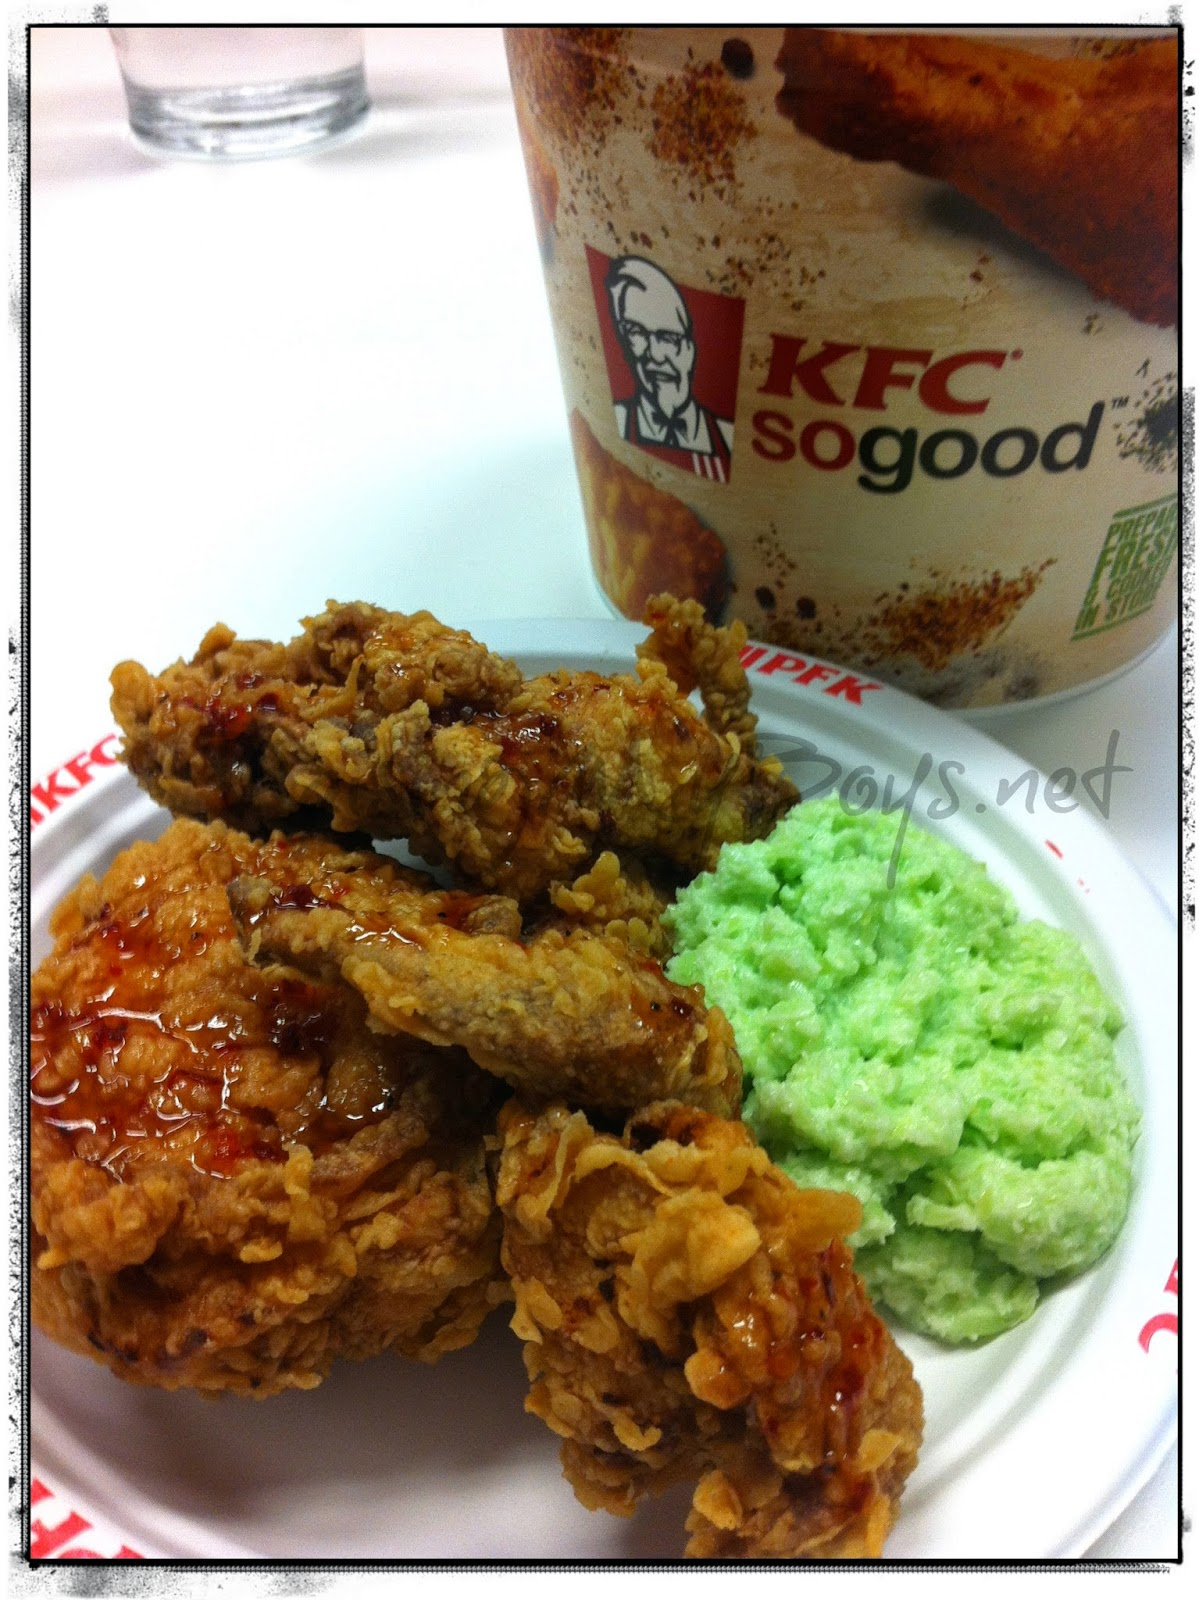 KFC Sweet Chili Crunch Chicken